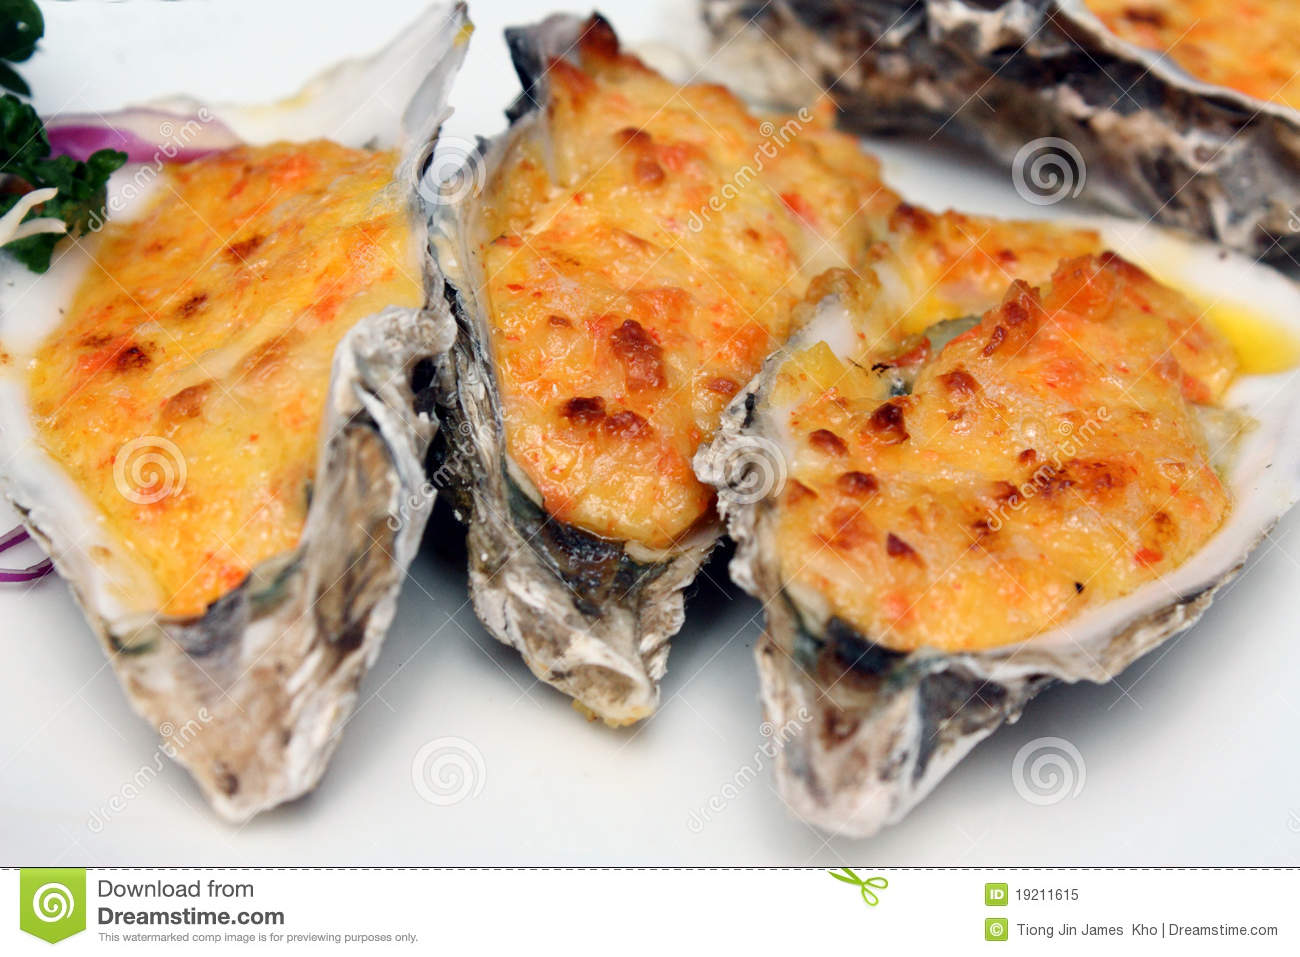 Cheese-Baked Oysters Royalty Free Stock Photo - Image: 19211615